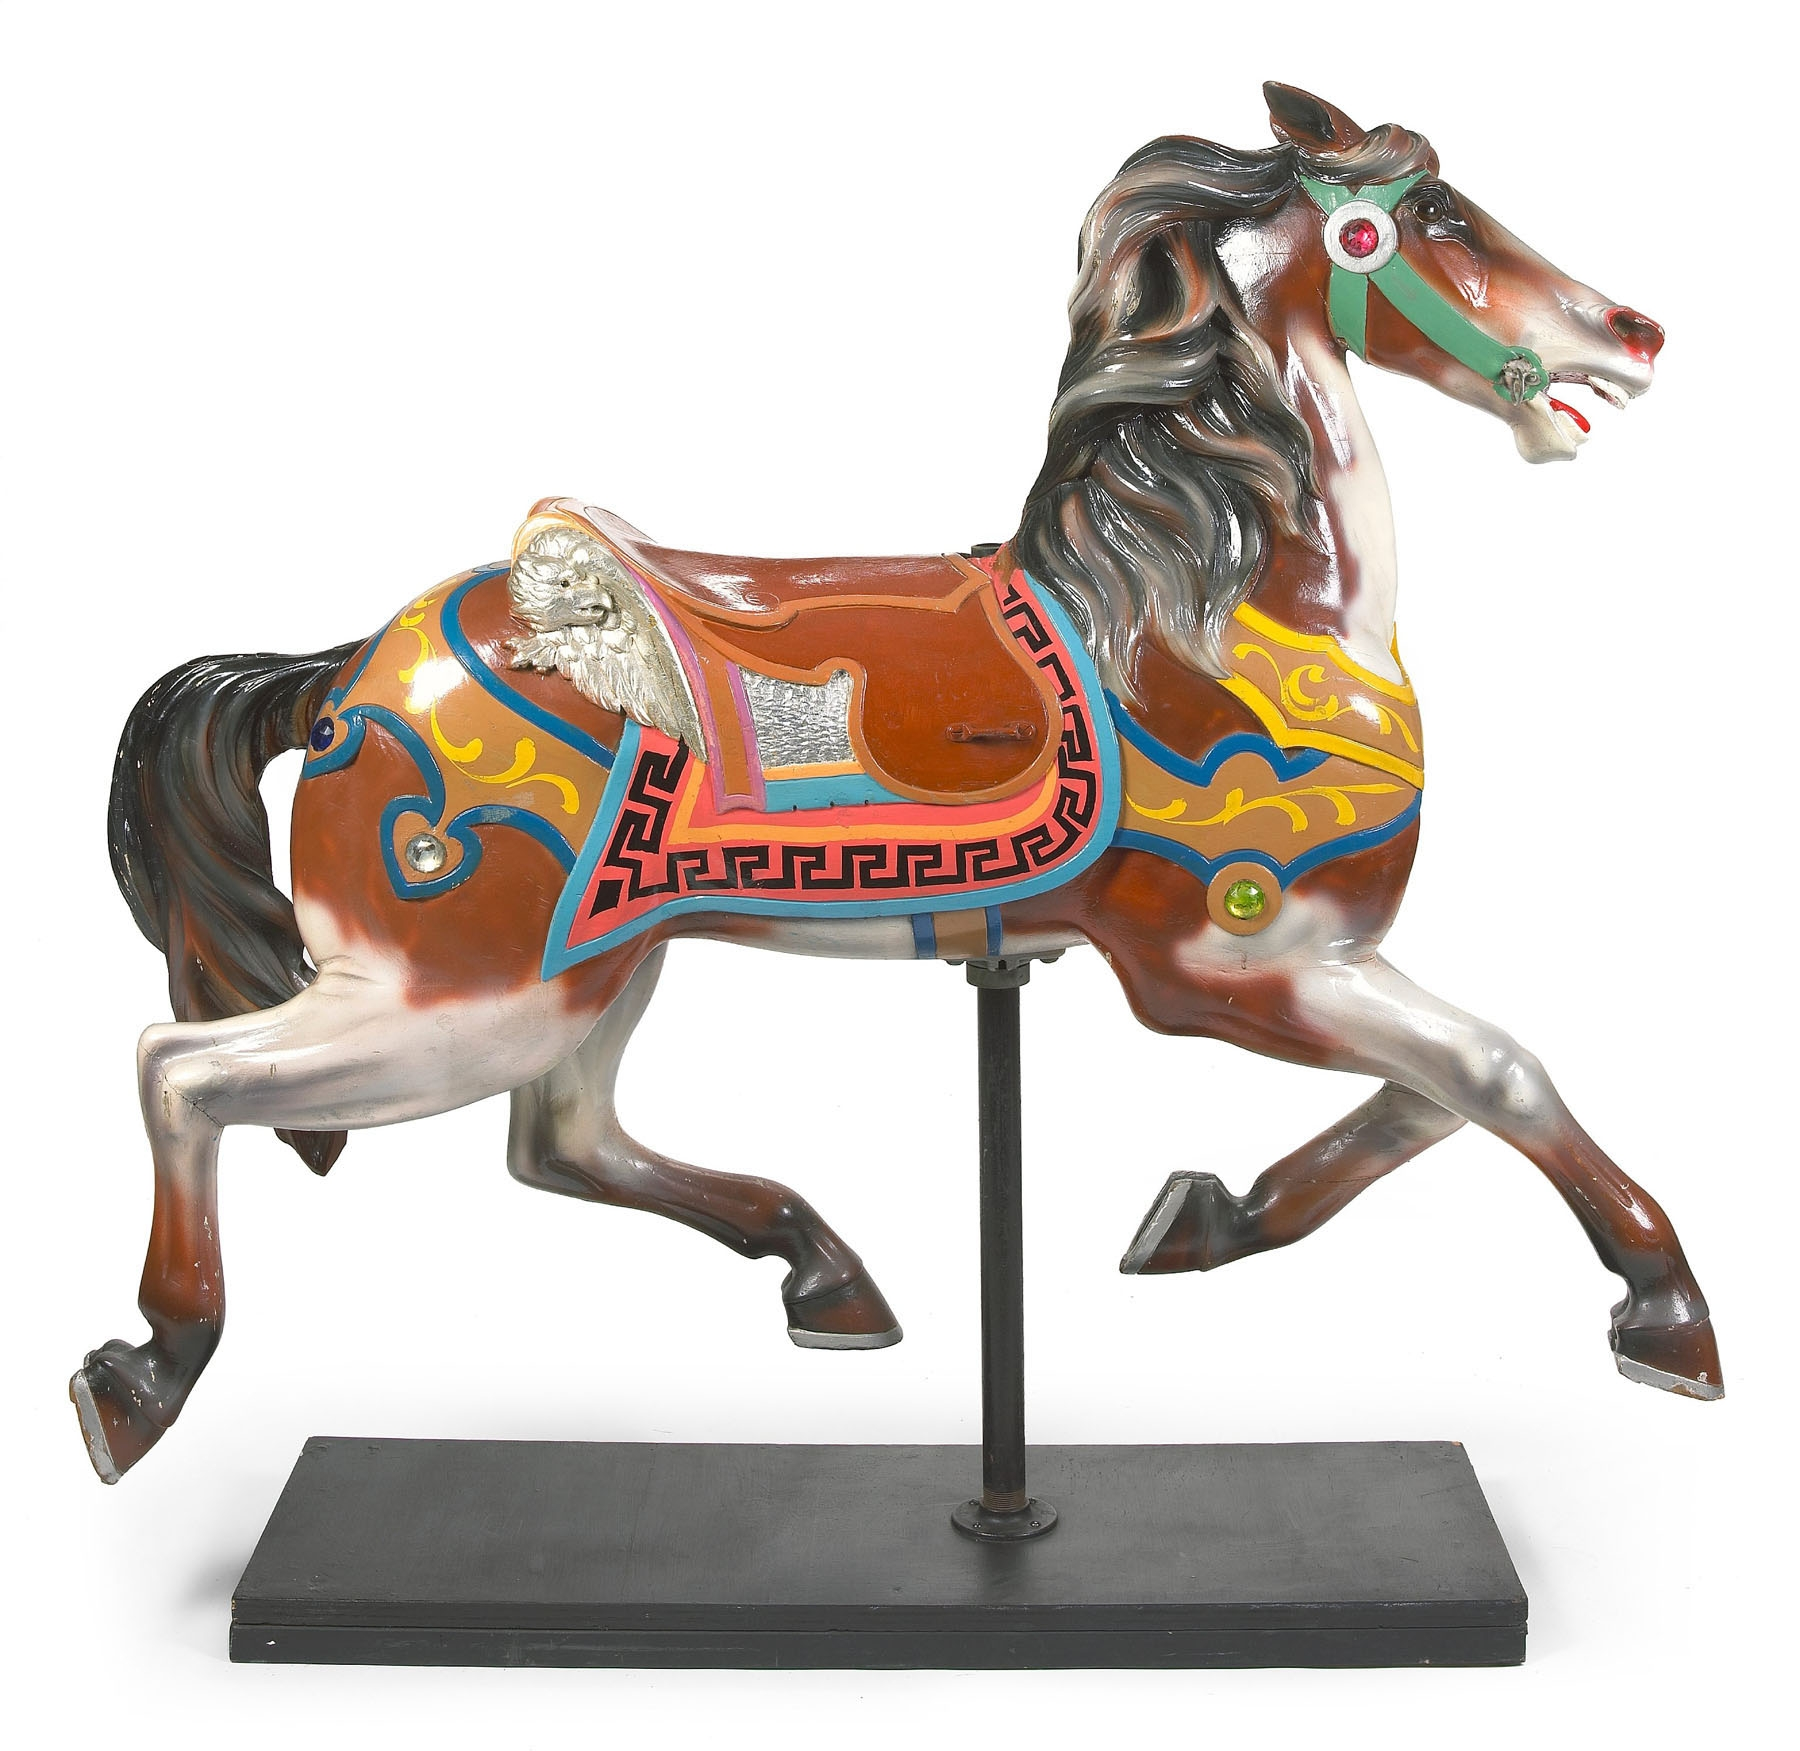 Made around 1900 by a celebrated carver, the American painted carousel horse had a pre-auction estimate of $8,000-$12,000 this winter at Bonhams and Butterfields New York.